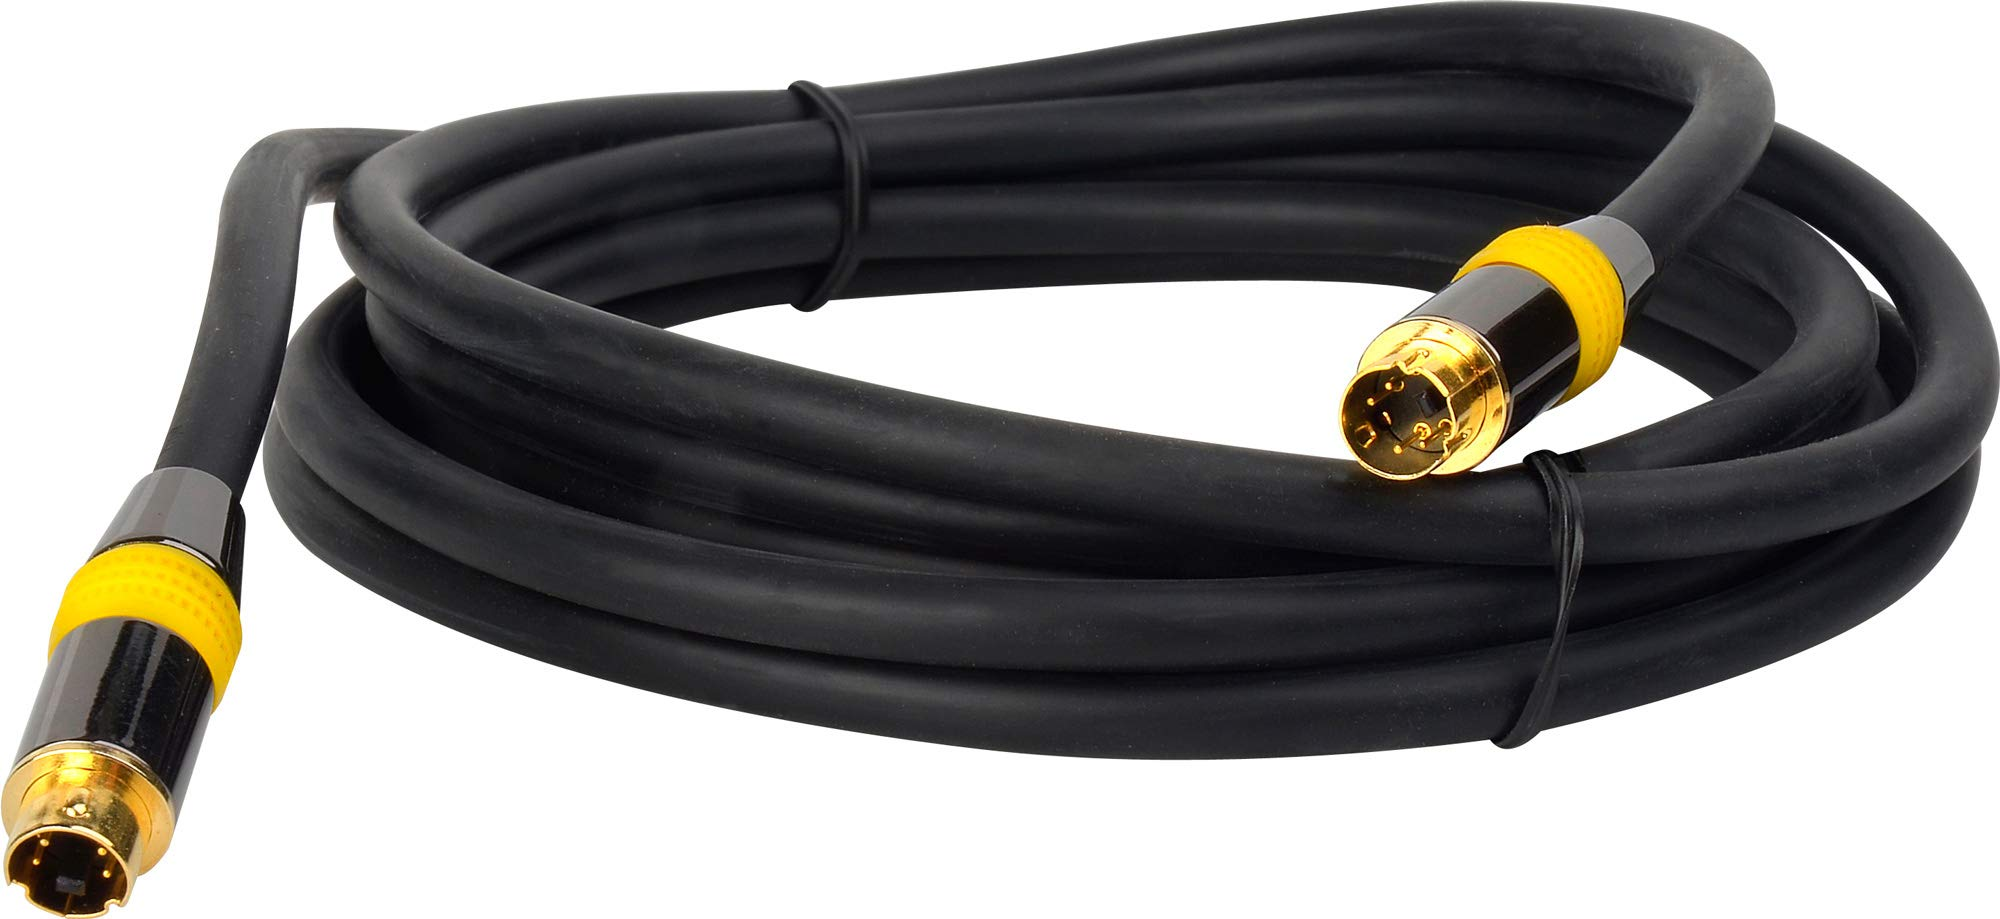 Tecnec Svhs 4-Pin Male to 4-Pin Male Flexible Cable with Gold Connectors 100Ft